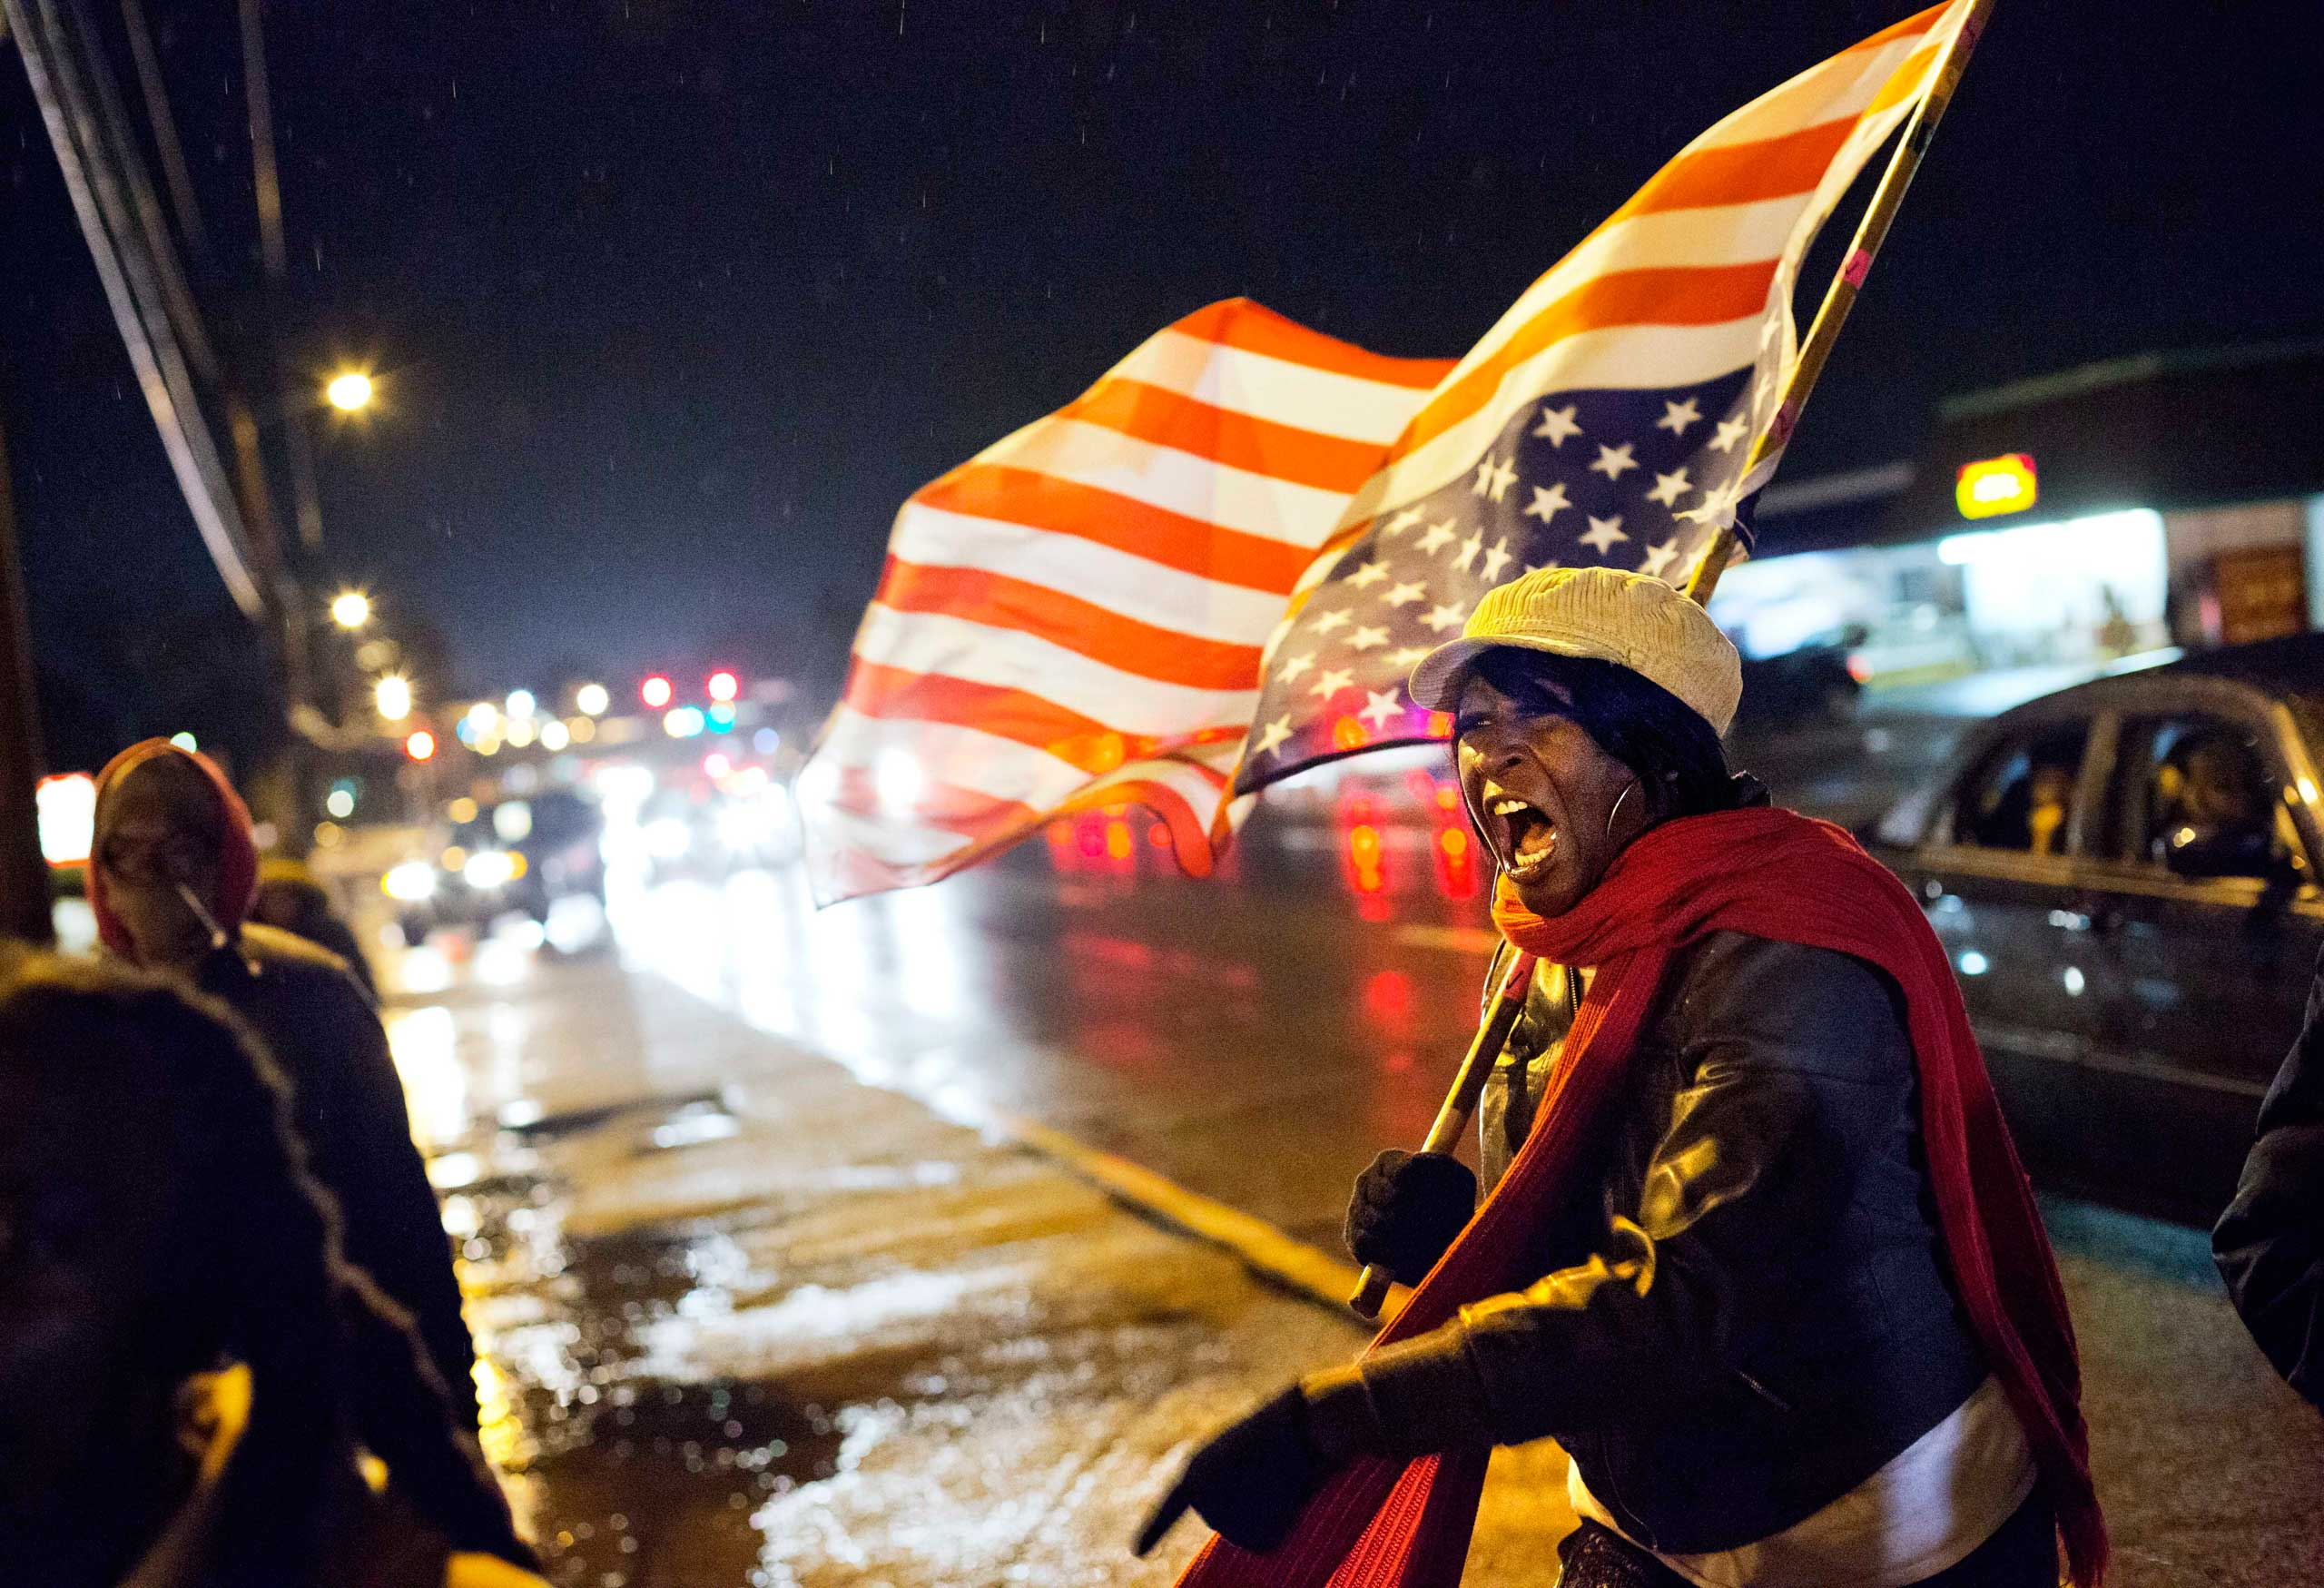 Gina Gowdy, of Ferguson, Mo., shouts while marching with protestors along a stretch of road where violent protests occurred following the August shooting of unarmed black teenager by a white police officer, Saturday, Nov. 22, 2014, in Ferguson, Mo.